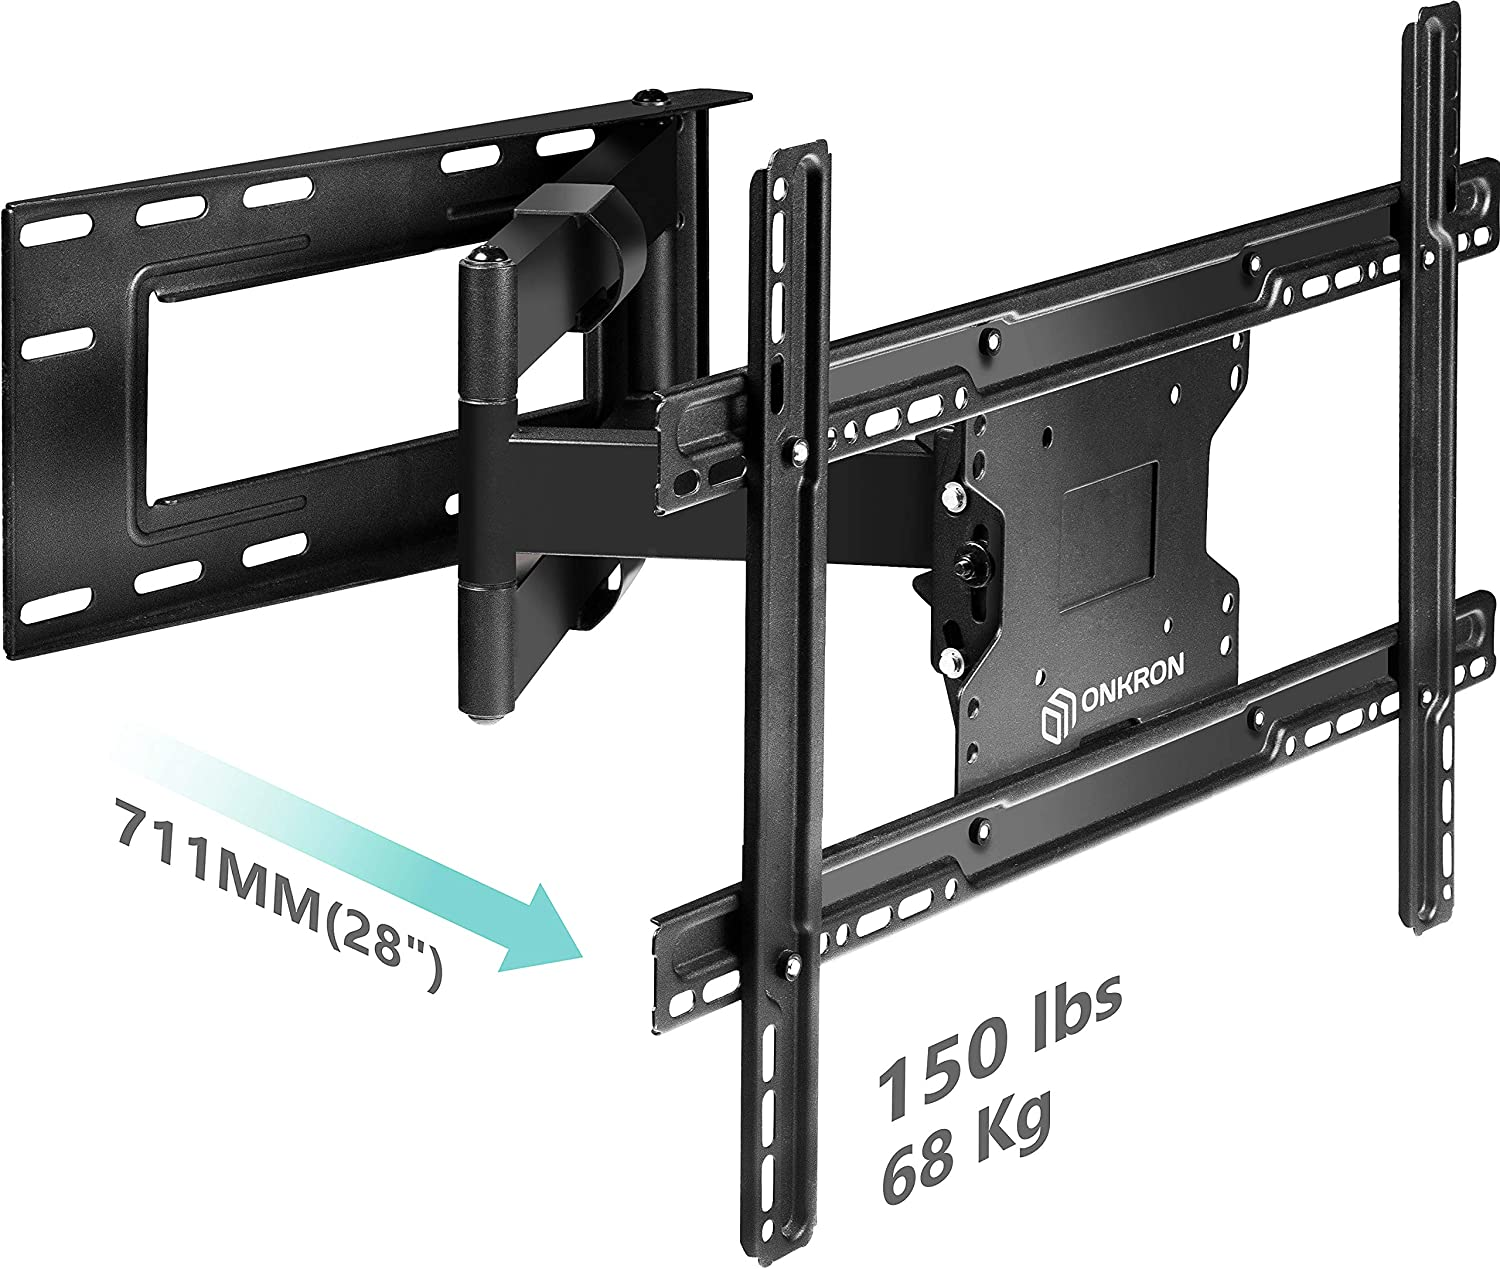 "ONKRON TV Wall Mount Bracket Full Motion Articulating Long Arm for 39"" – 60 Inch LED LCD Plasma Flat Screen TV with Tilt Swivel 150 LBS Loading Capacity M7L"